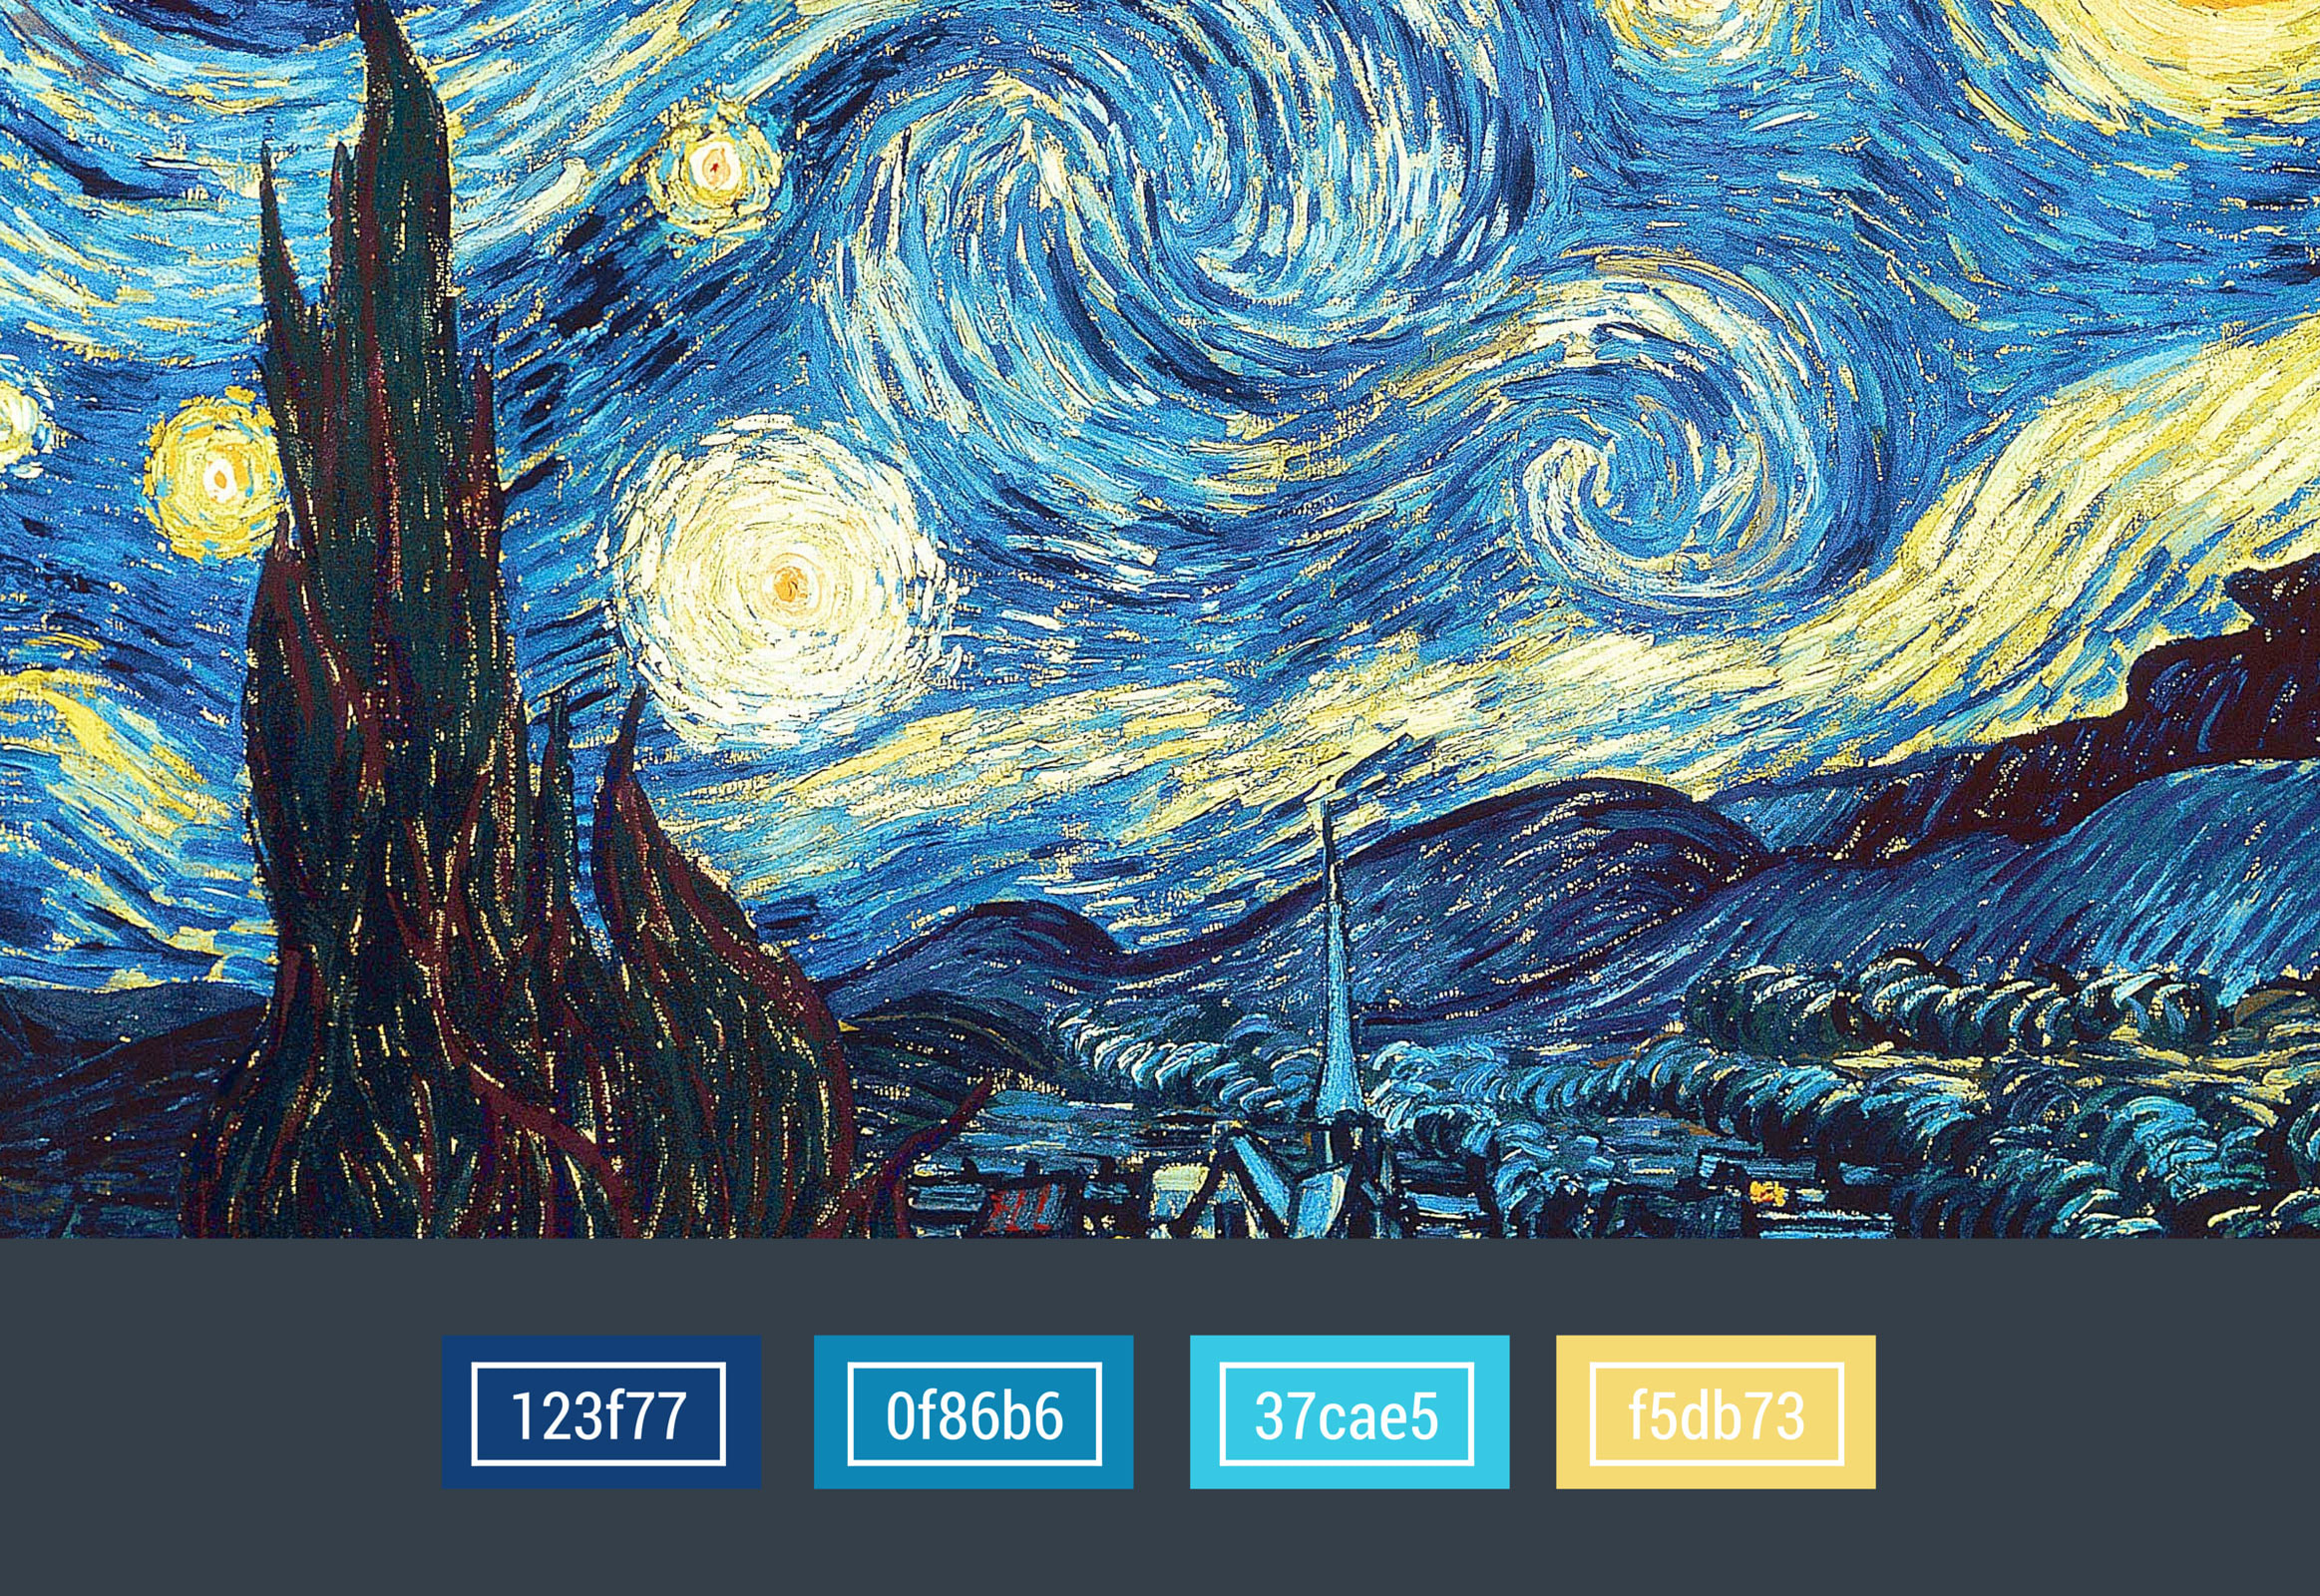 colors used in the Post Impressionism era